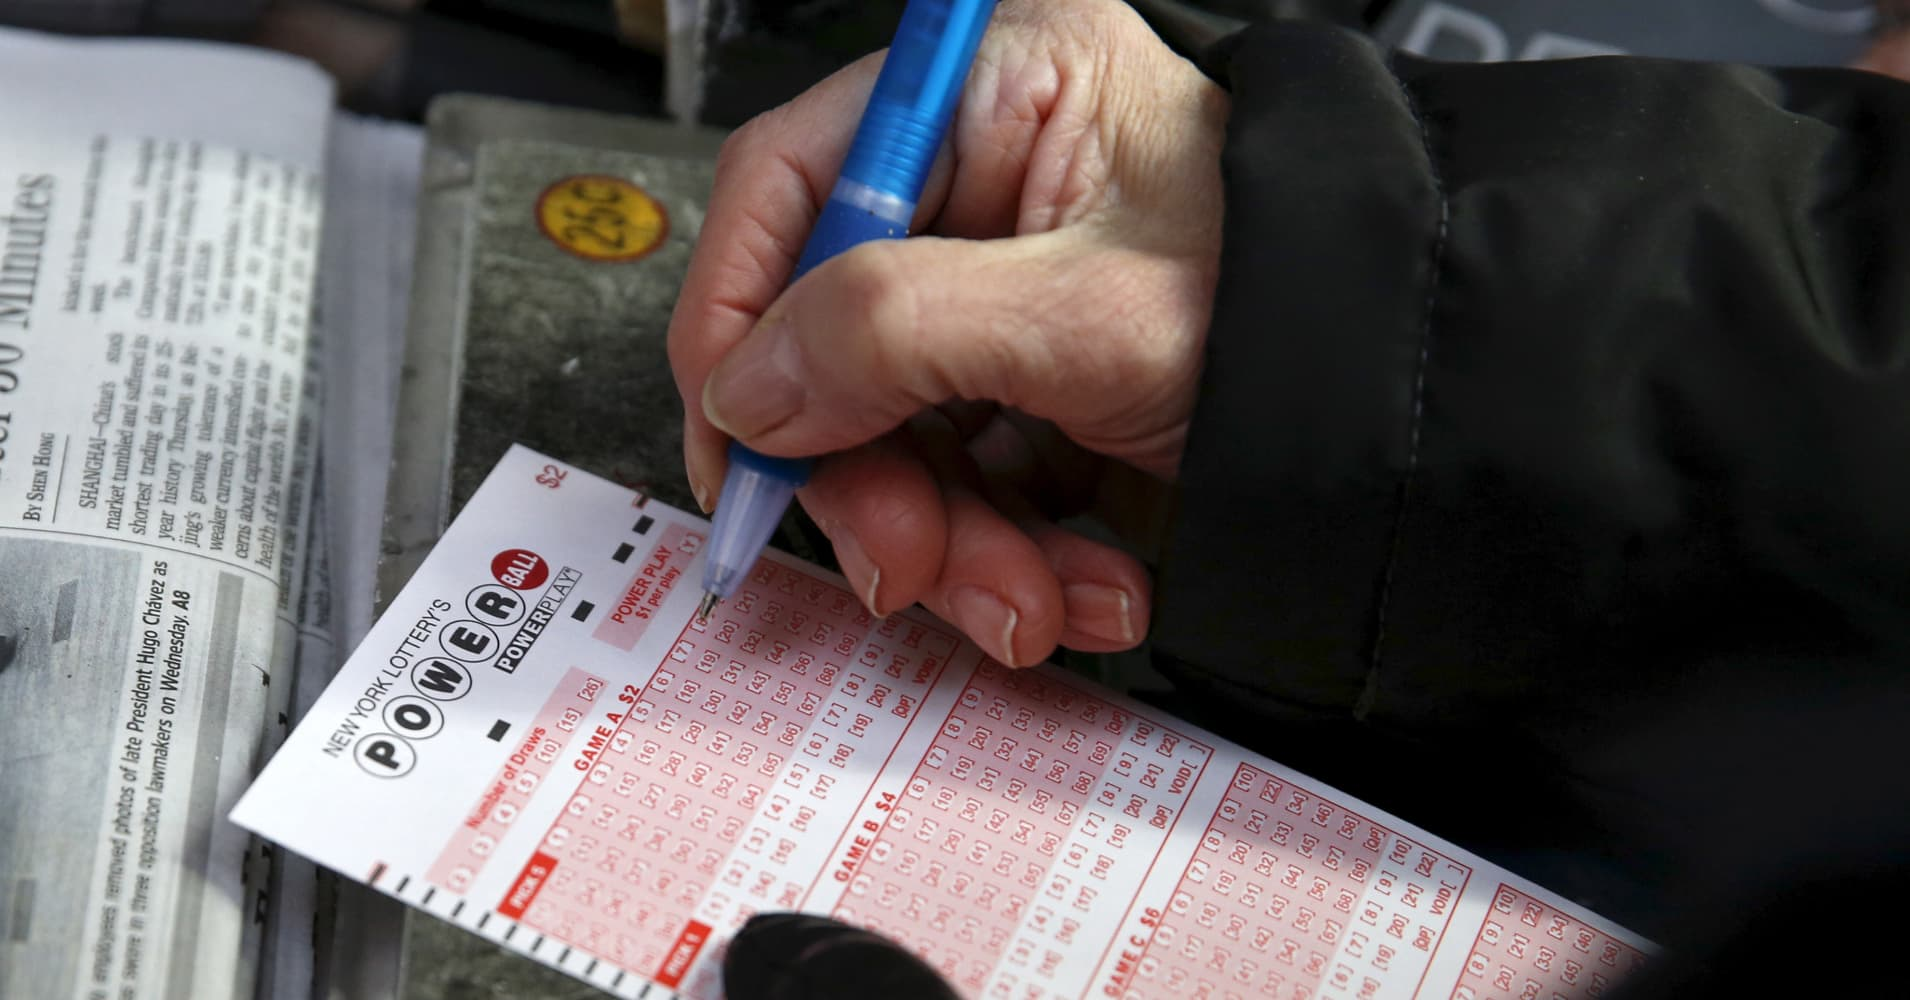 A woman fills out a ticket for the $700 million Powerball lottery draw at Times Square in the Manhattan borough of New York.